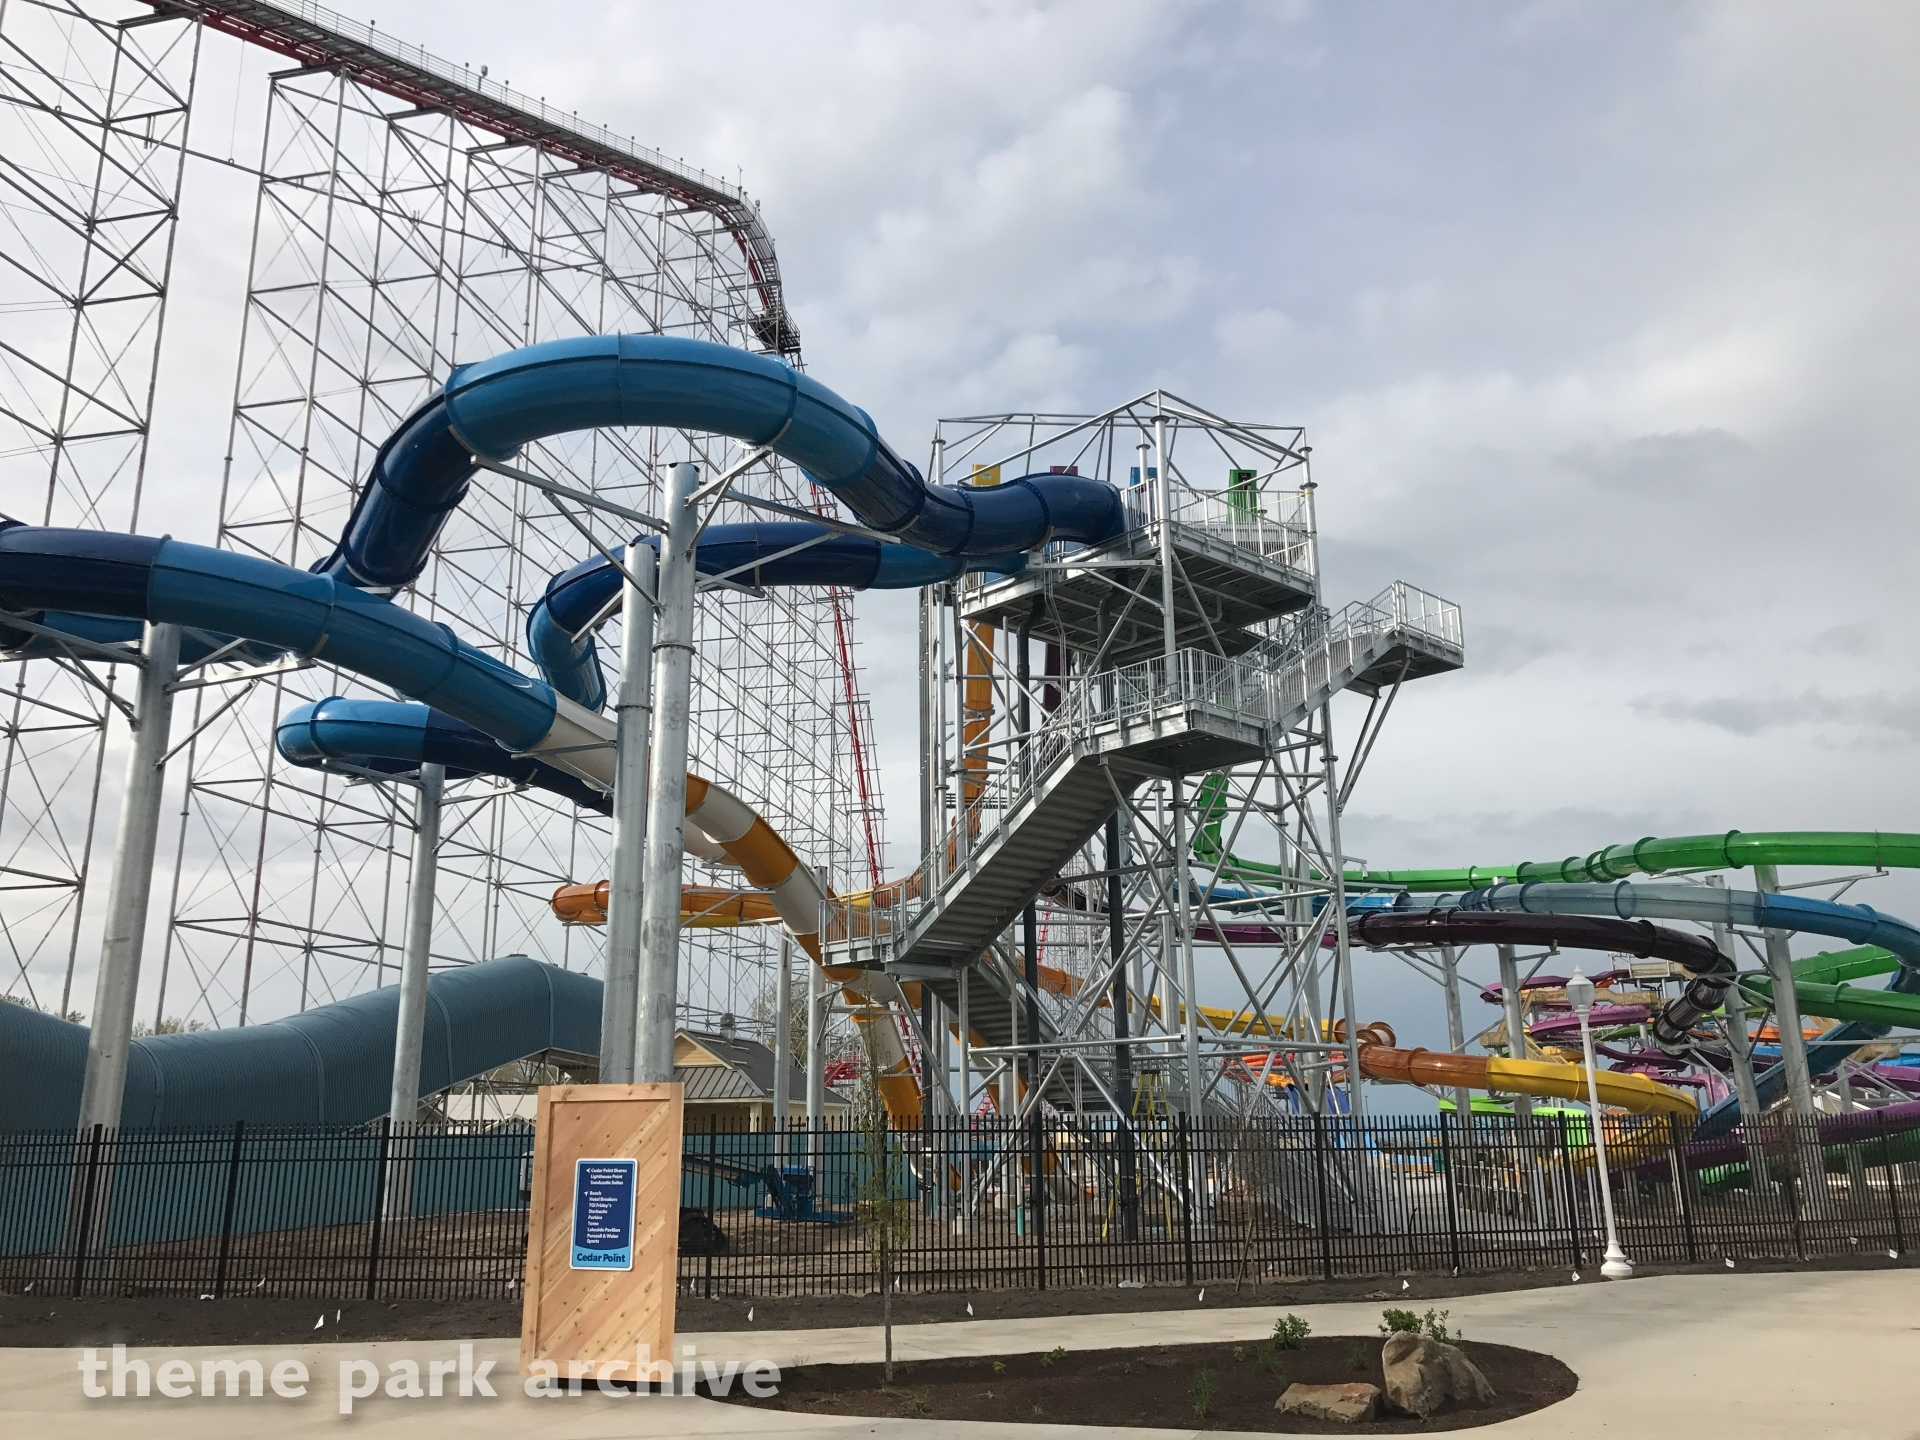 Point Plummet and Portside Plunge at Cedar Point